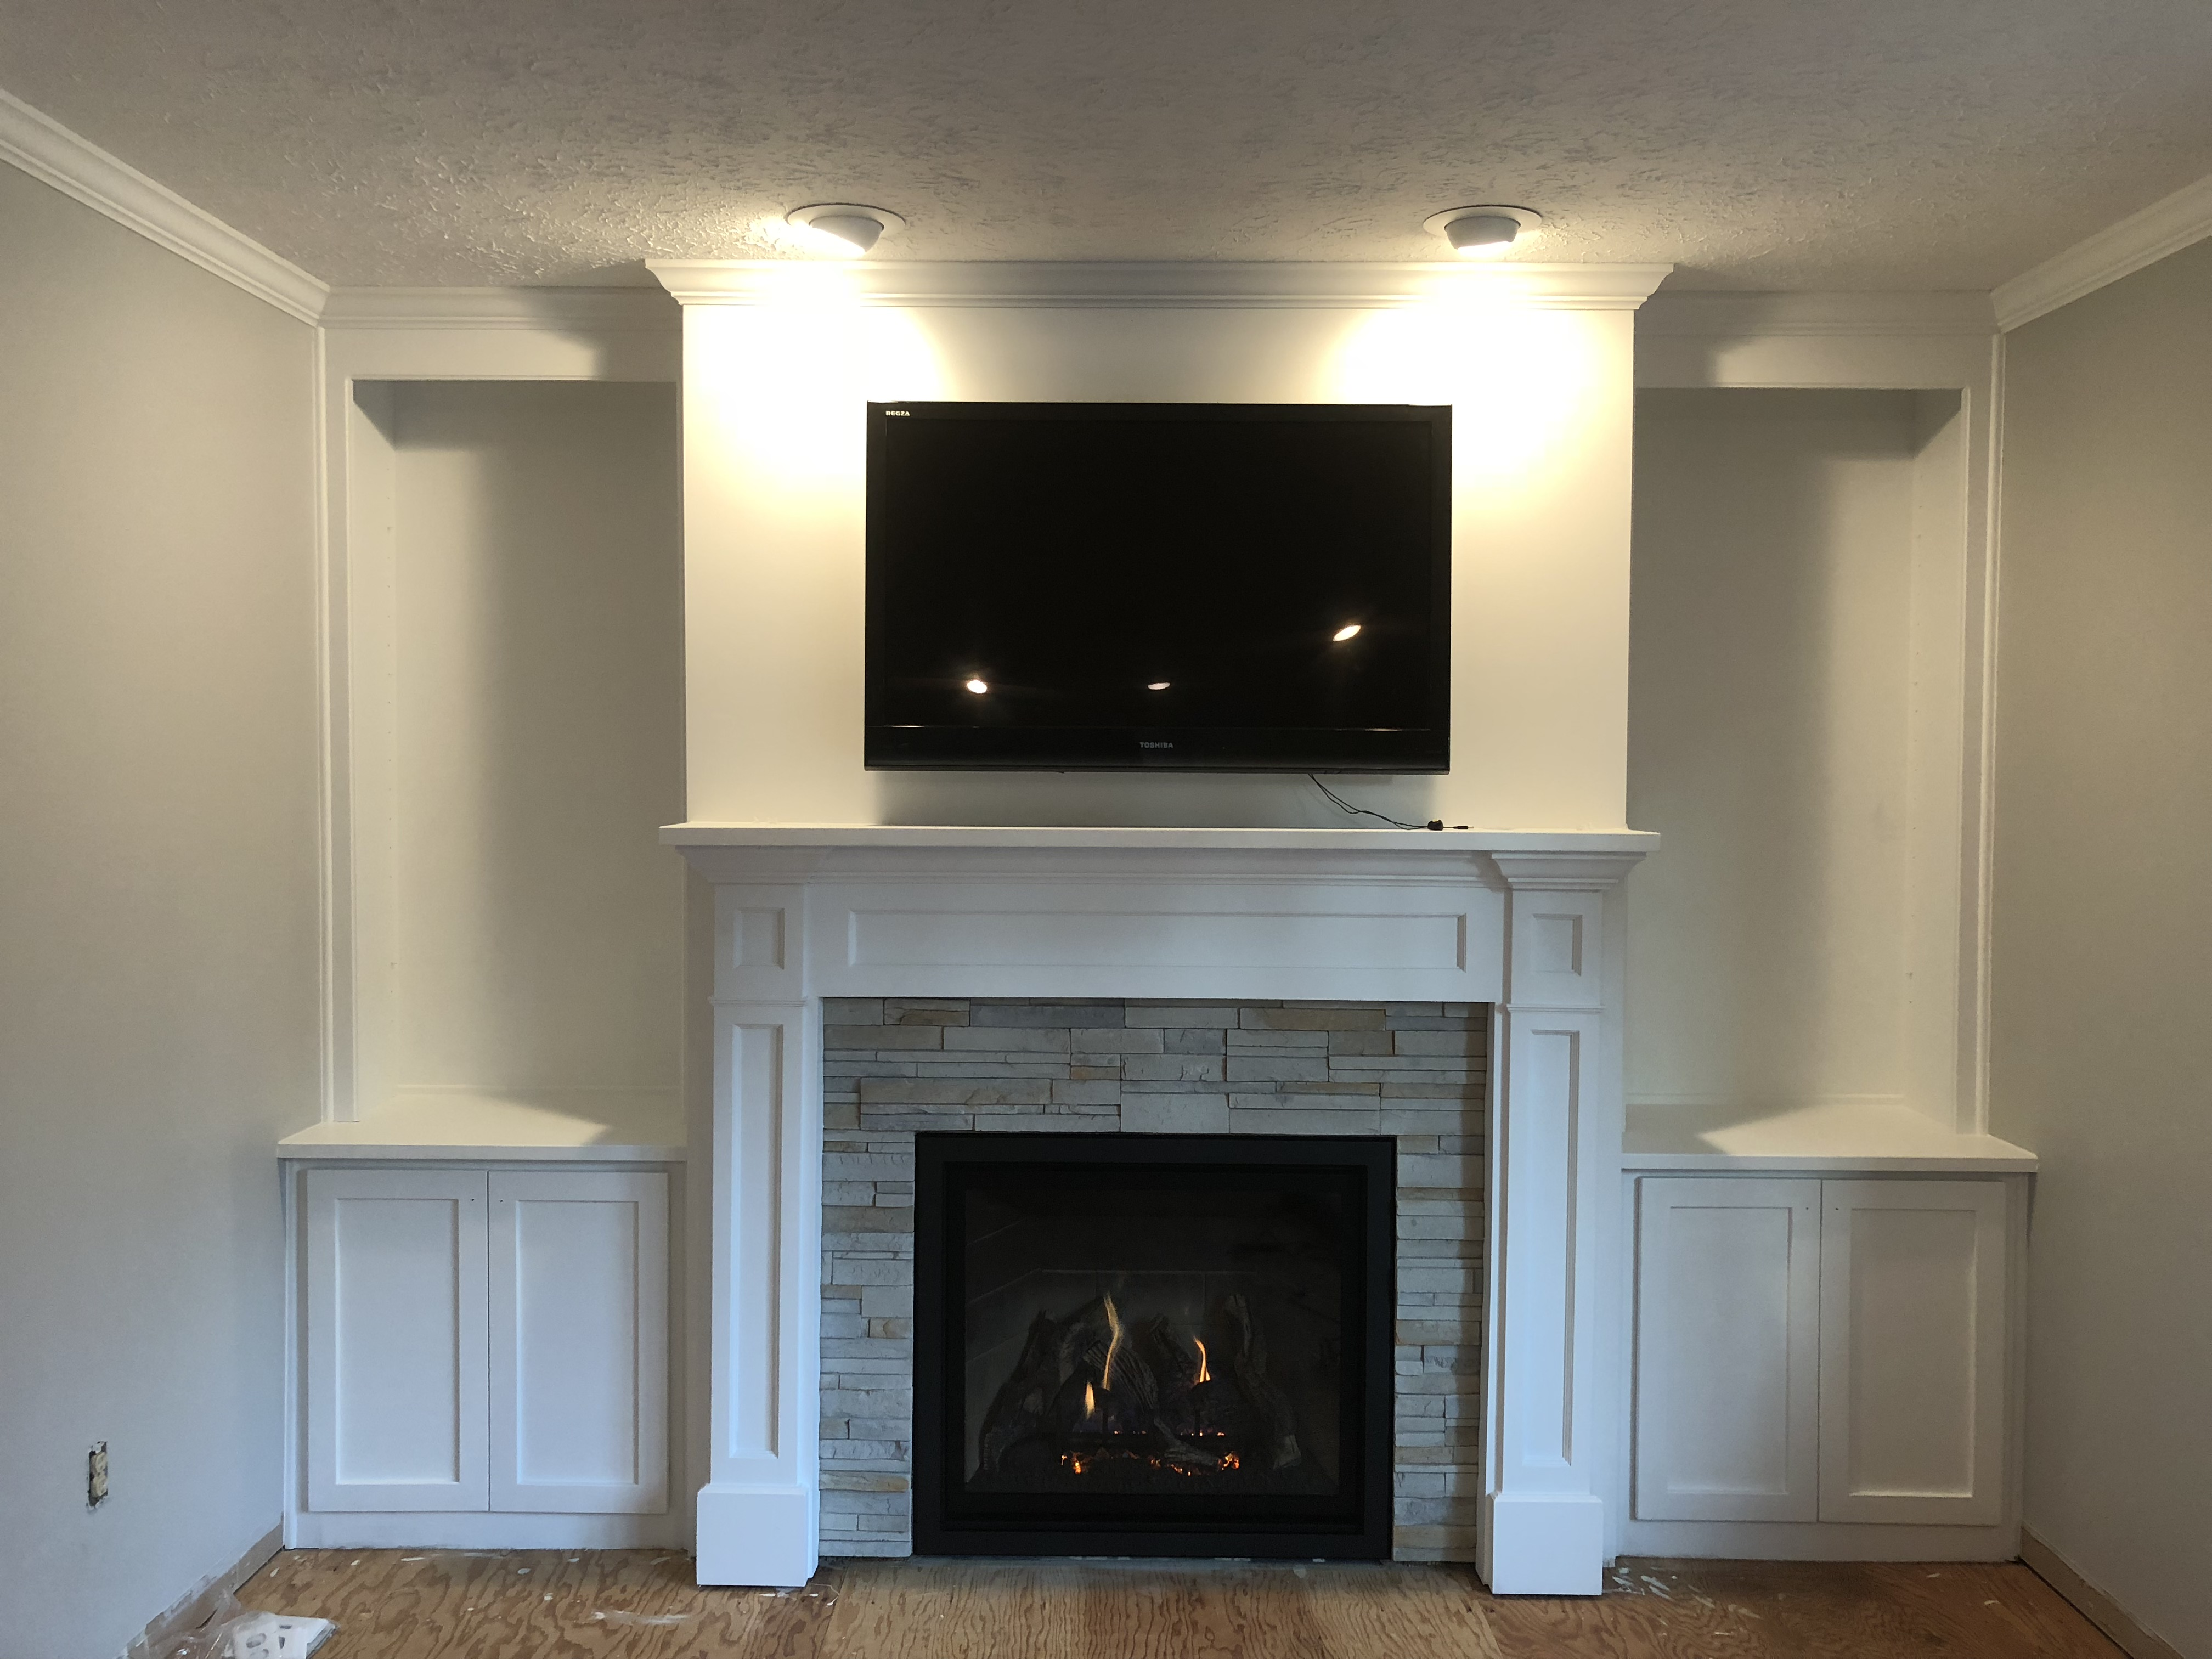 Image of a traditional Bayport 36-L gas fireplace by Kozy Heat featuring stone facing and painted mantle and built ins.